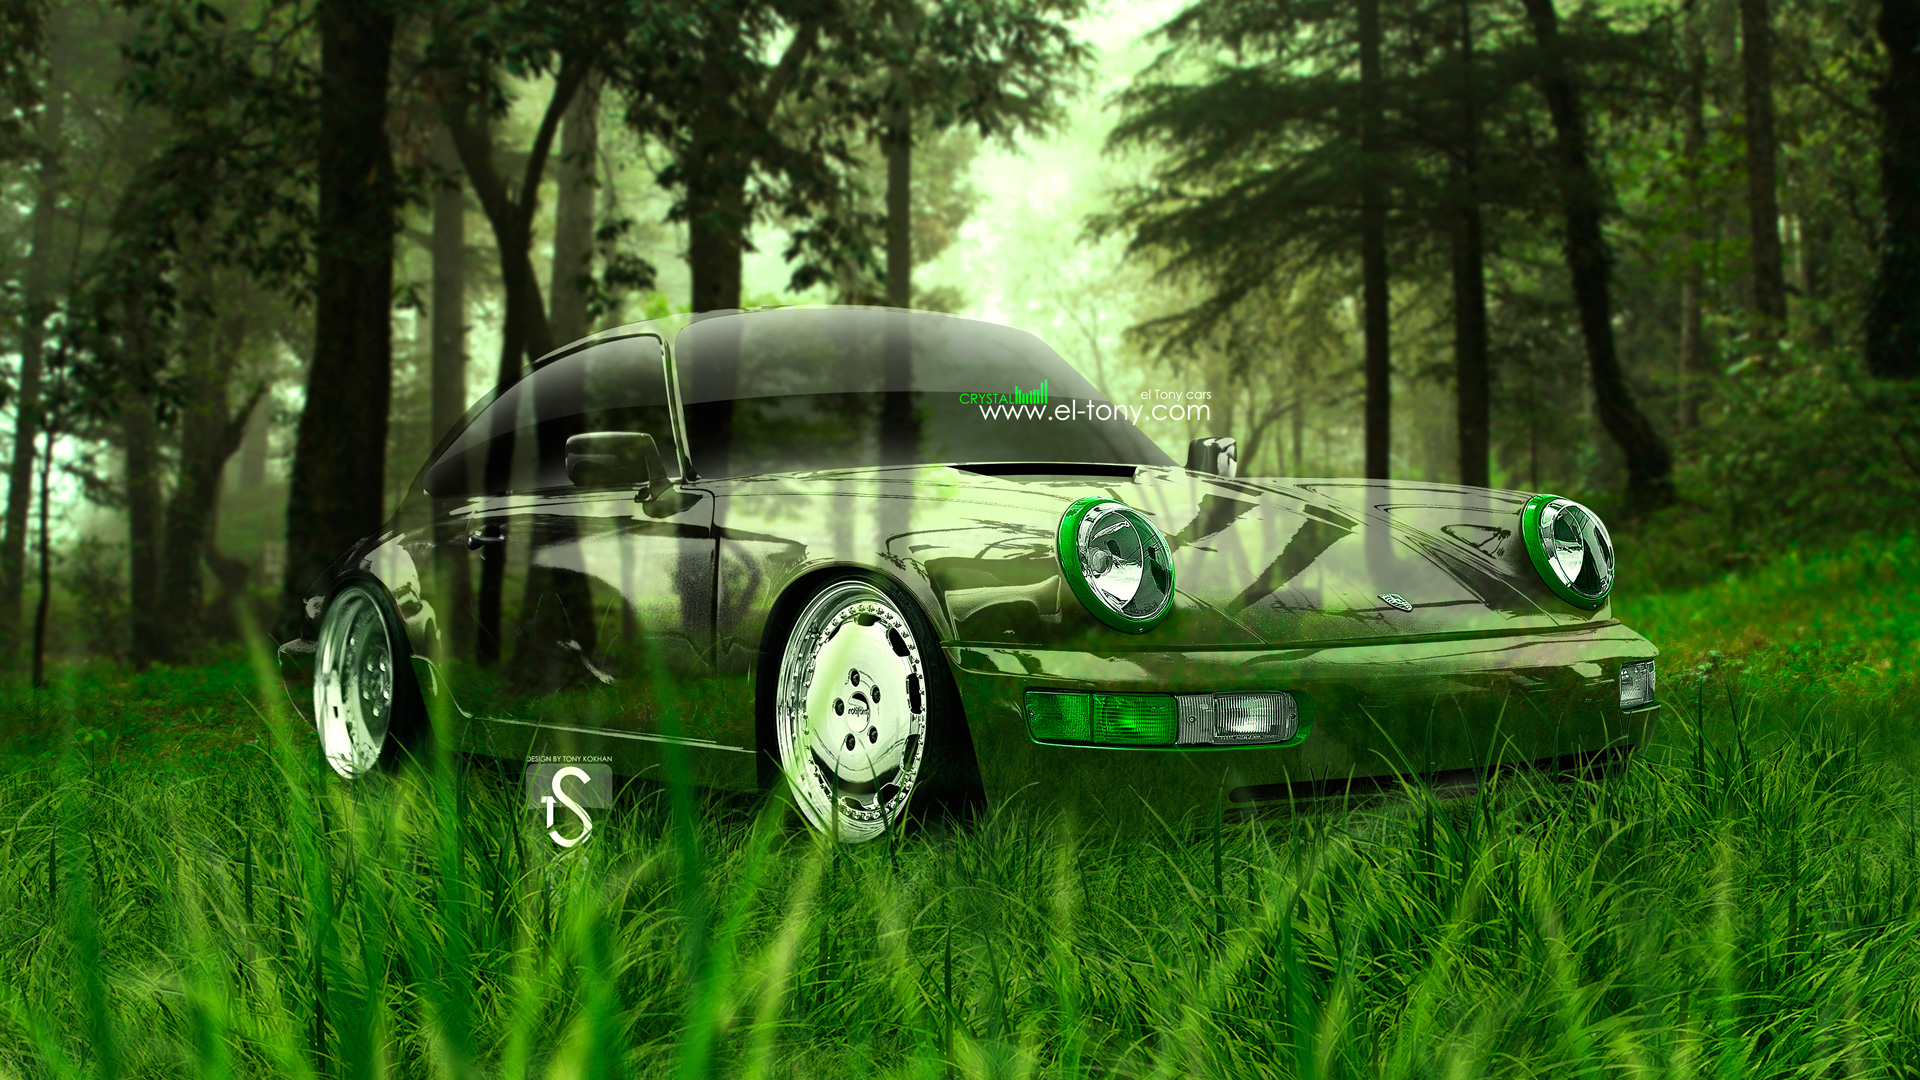 Charmant Porsche 964 Crystal Nature Car 2013 HD Wallpapers